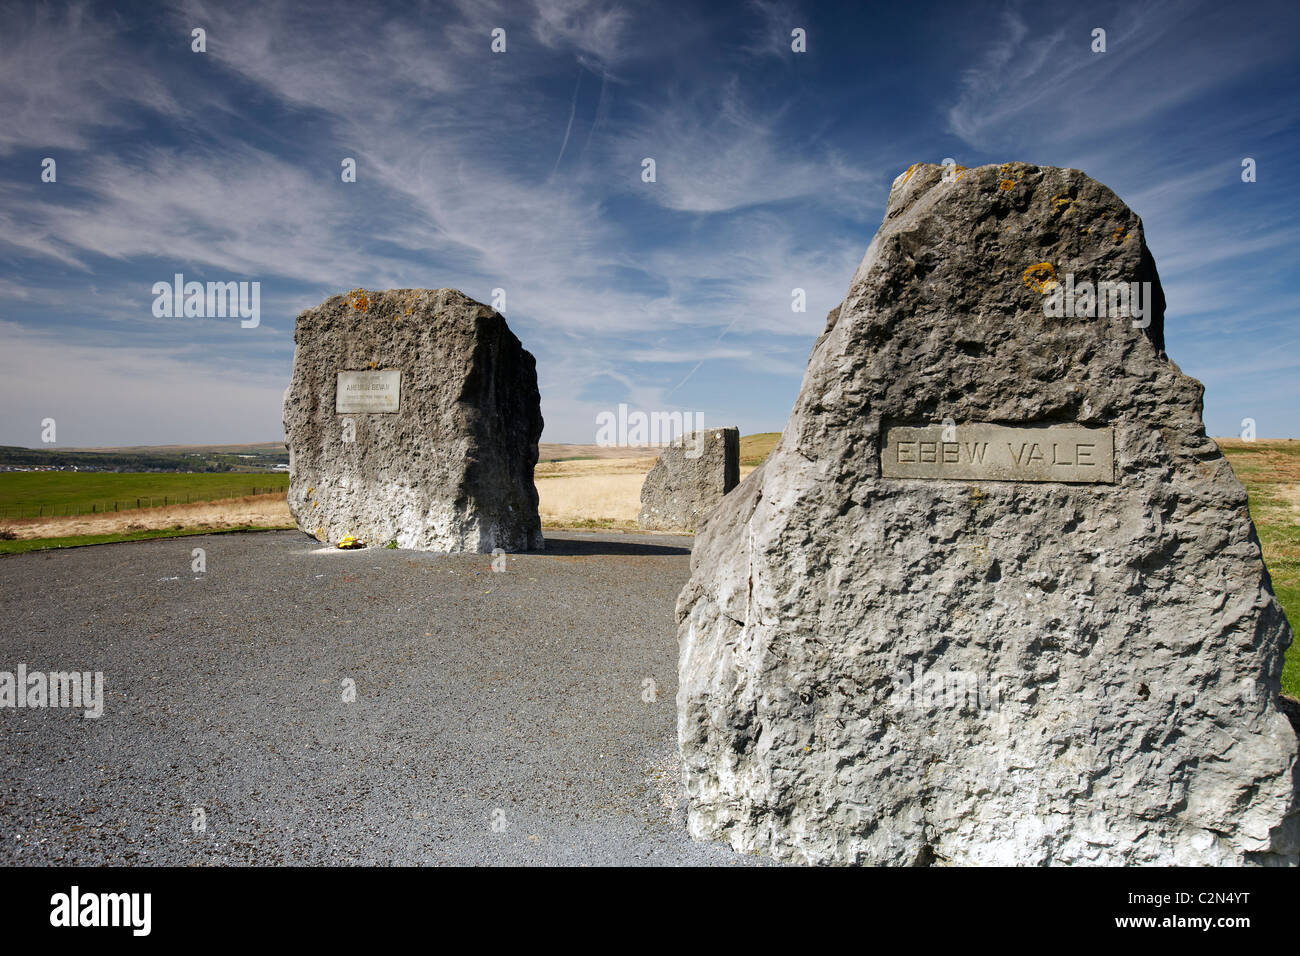 Memorial to Aneurin Bevan, between Tredegar and Ebbw Vale, South Wales, UK - Stock Image